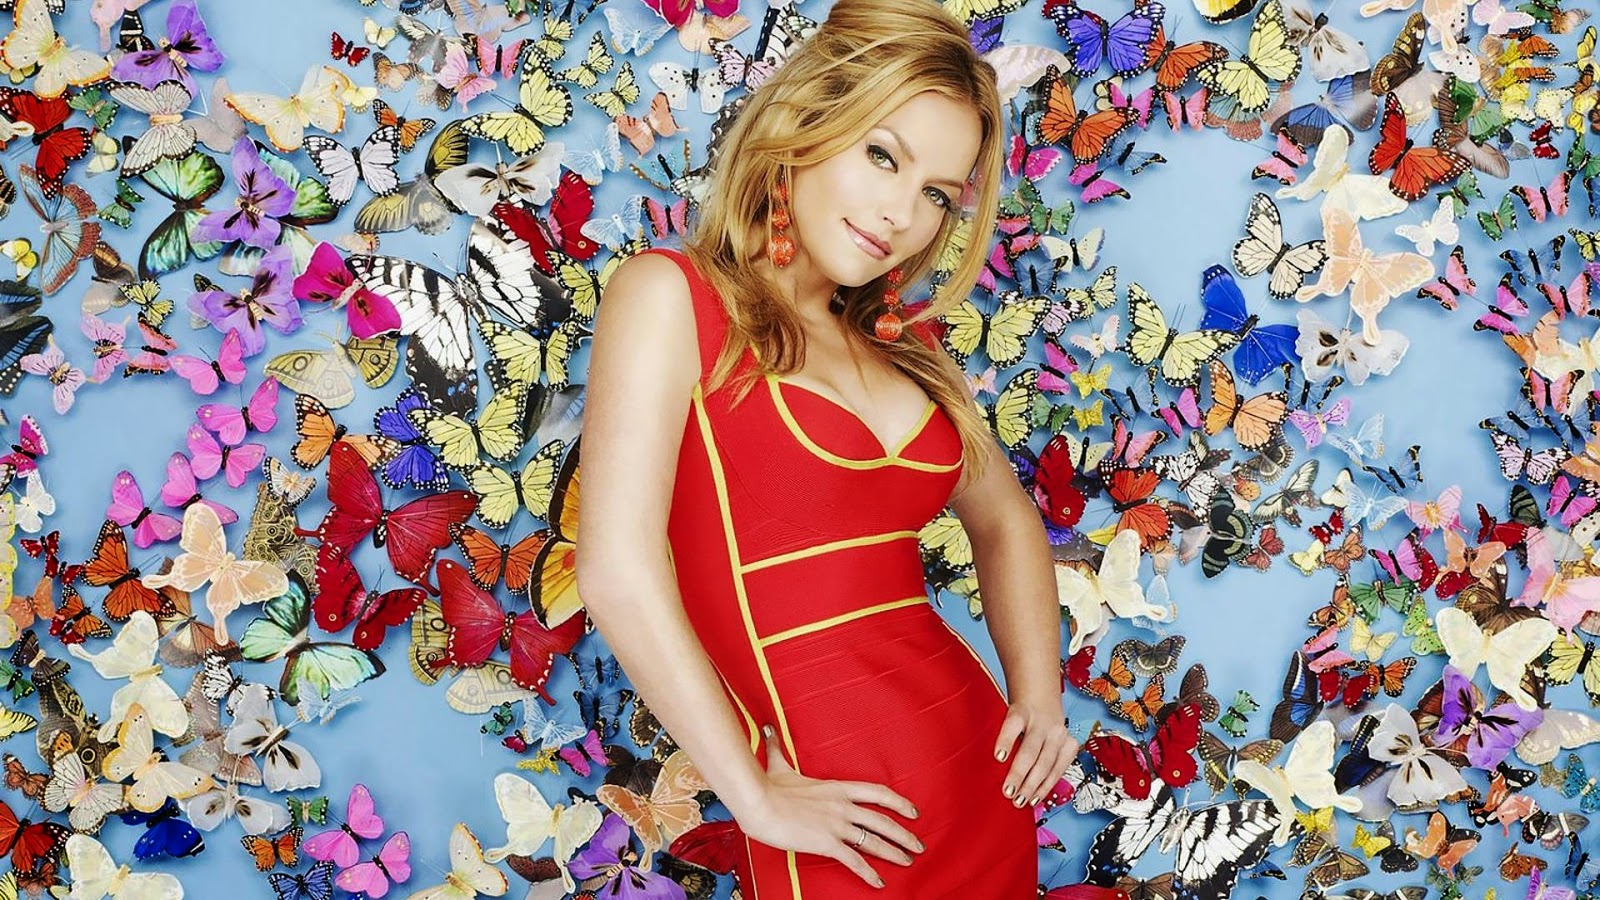 becki newton wallpapers becki newton pics becki newton pc wallpapers 738